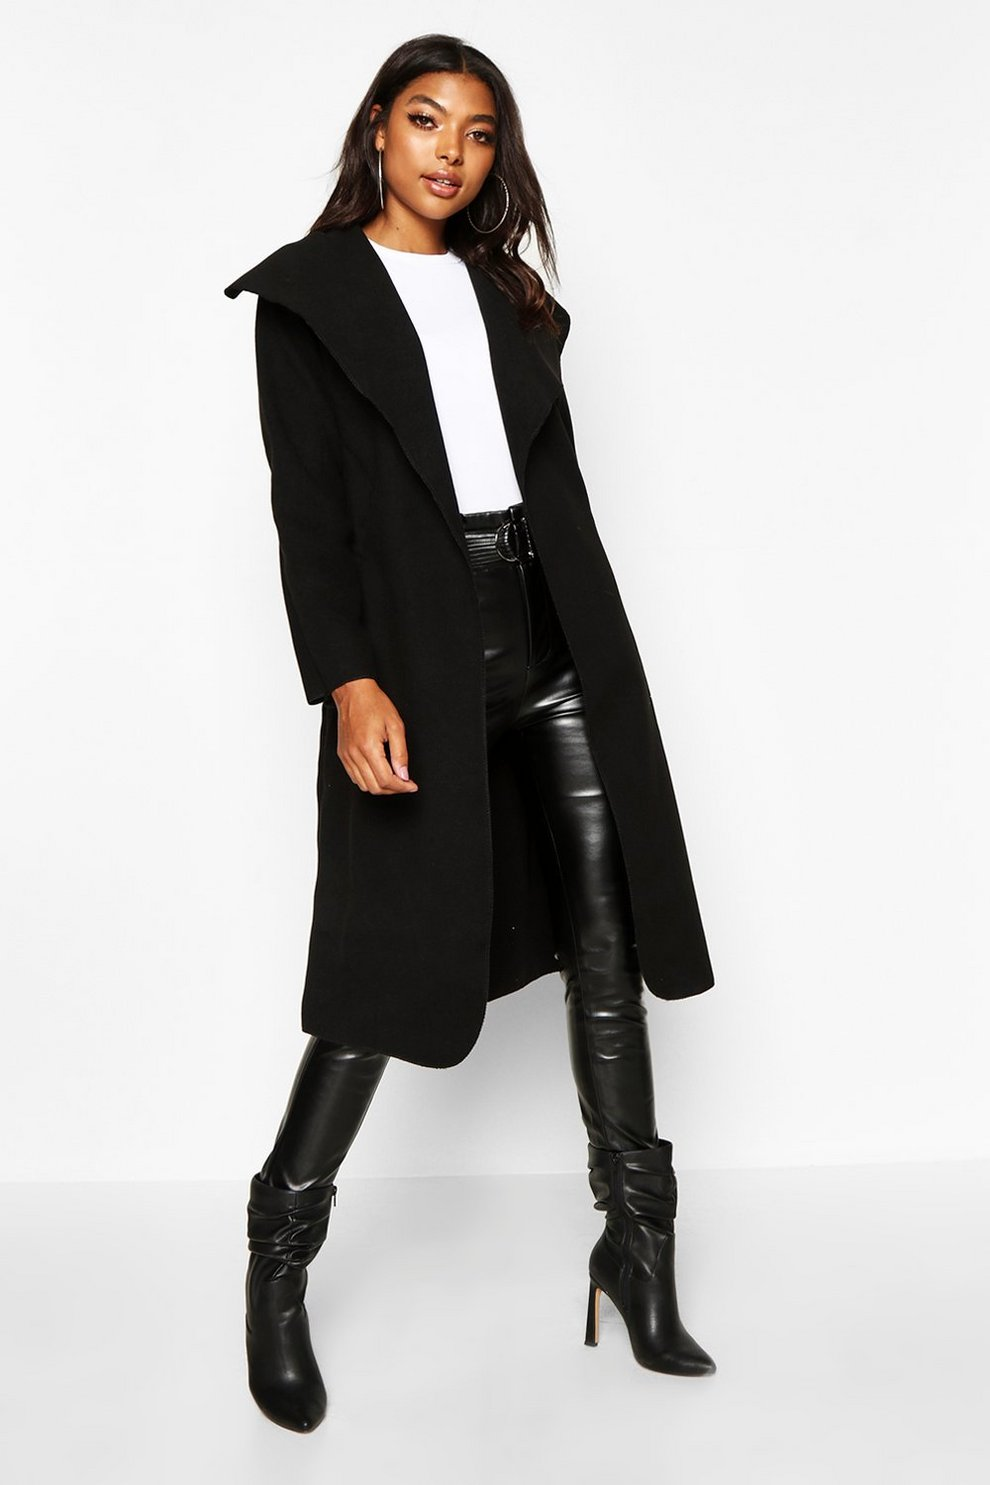 Visa Payment Boohoo Tall Shawl Jacket 100% Authentic Cheap Online Clearance Wholesale Price KEQb9J1Hy4